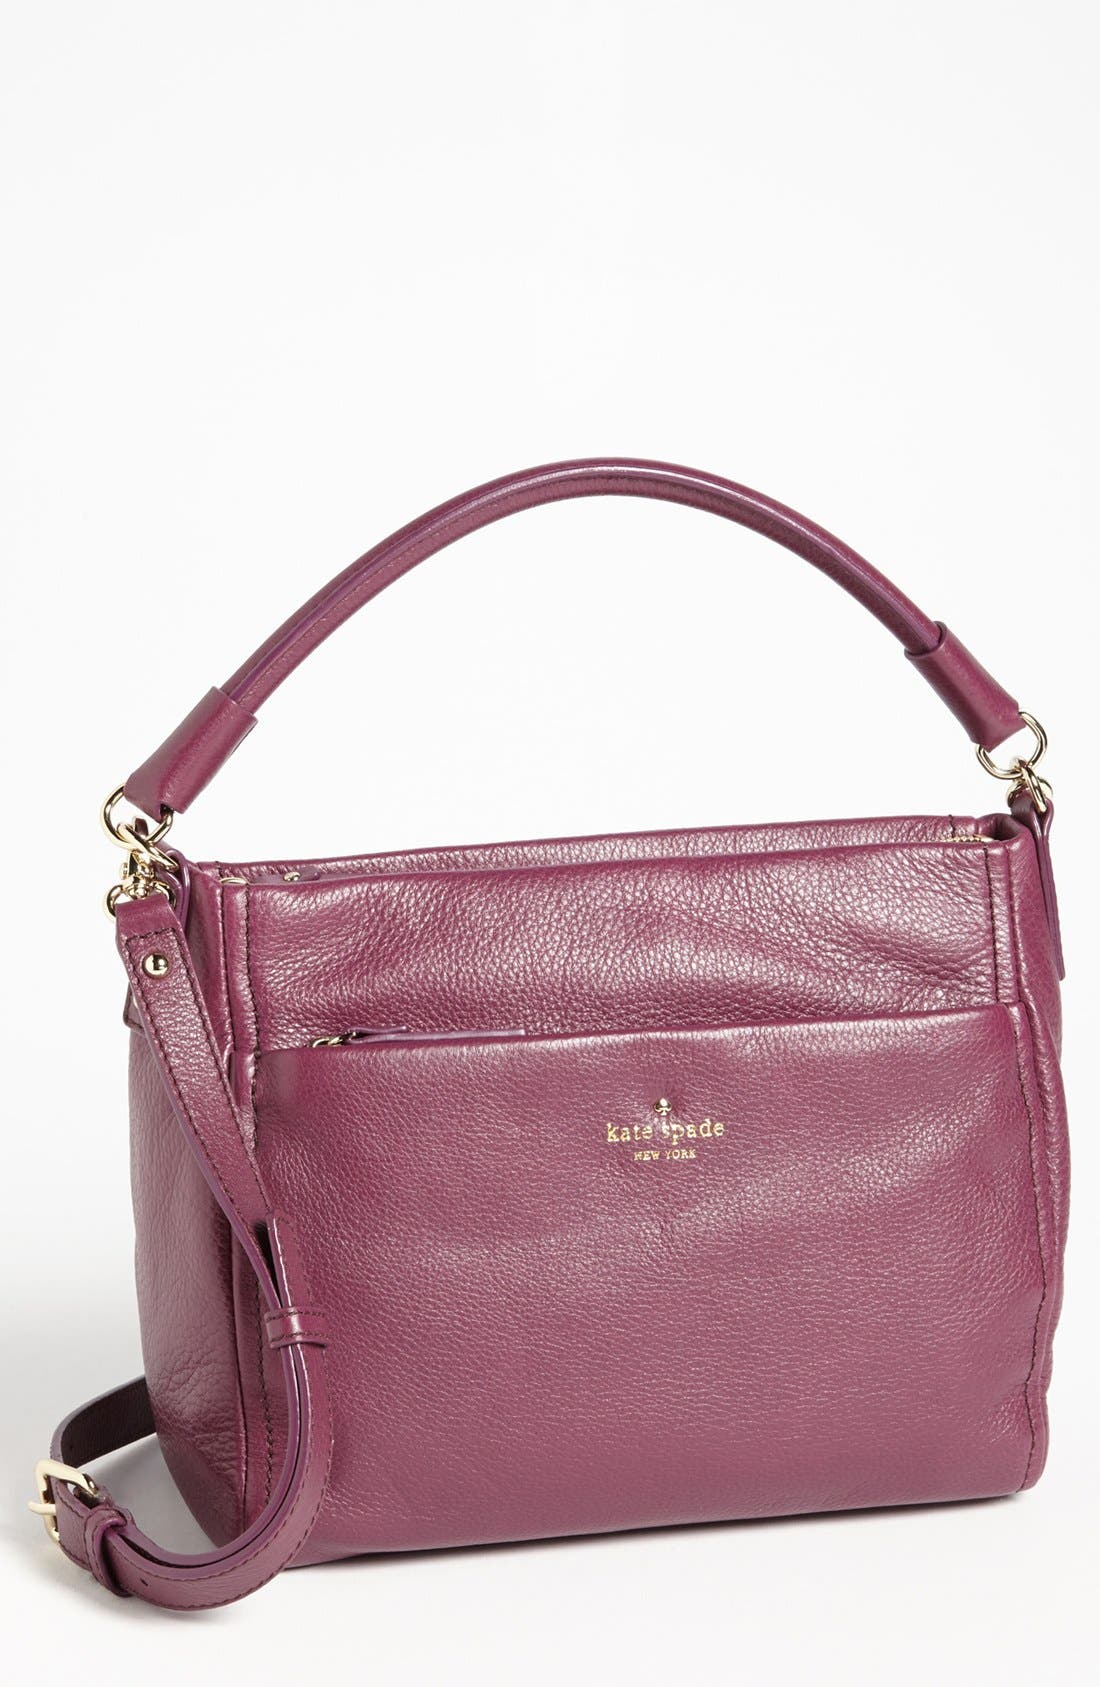 Alternate Image 1 Selected - kate spade new york 'cobble hill - little curtis' leather crossbody bag